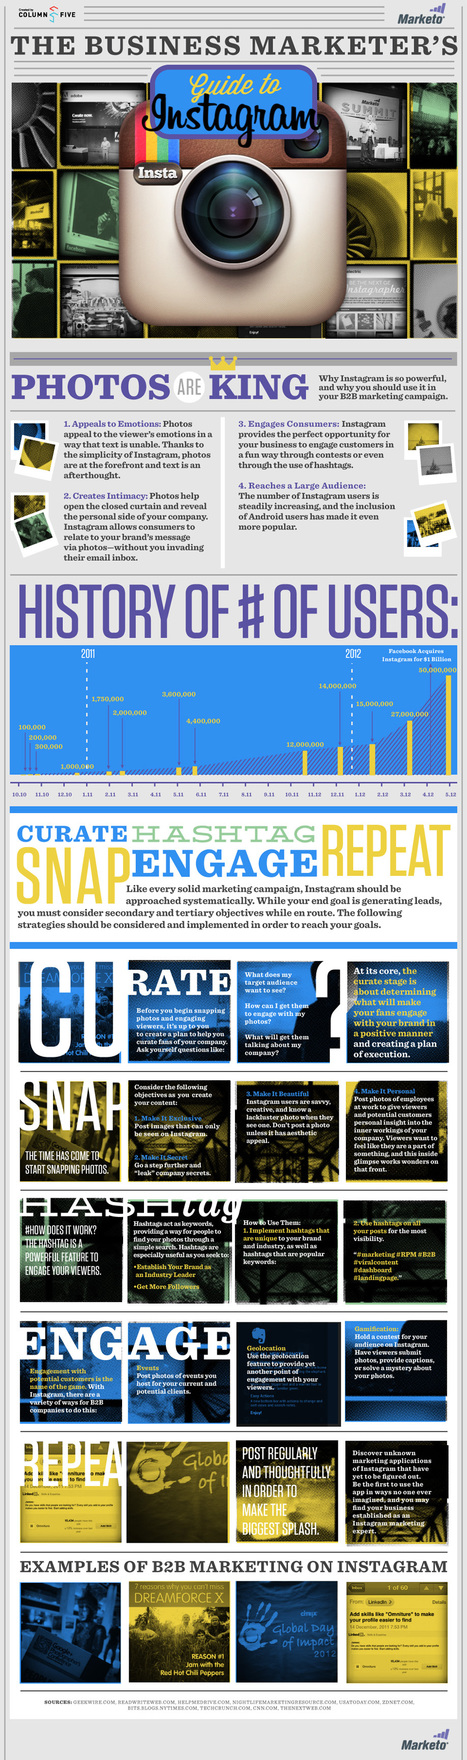 Marketing on Instagram [Infographic]   Business 2 Community   Best Infographics of all time   Scoop.it